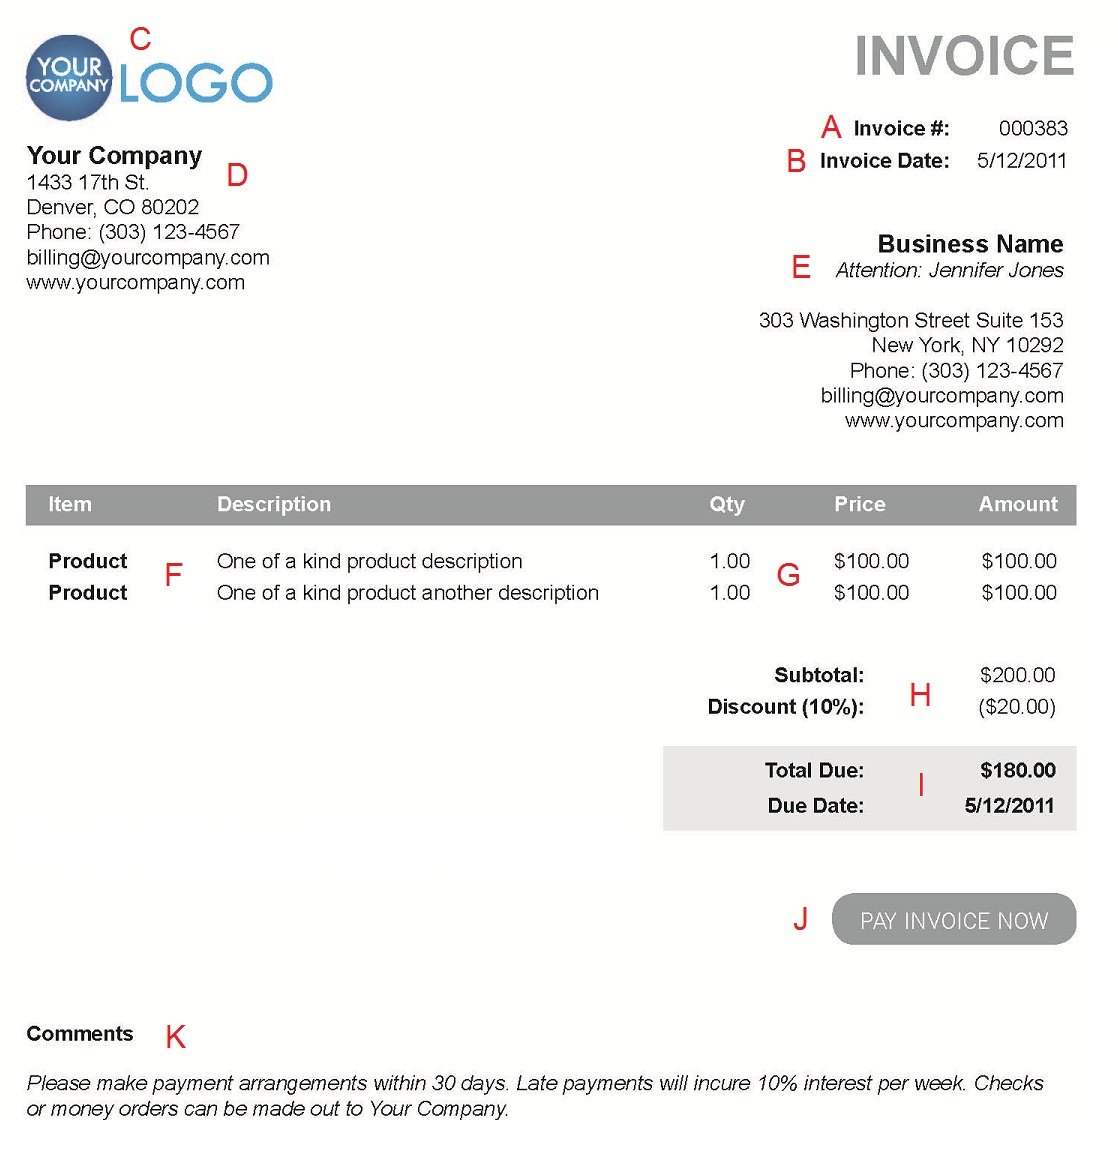 Aaaaeroincus  Pretty The  Different Sections Of An Electronic Payment Invoice With Remarkable A  With Agreeable Invoice Finance Broker Also Advantages Of Invoice Discounting In Addition Kia Optima Invoice Price And Training Invoice Template As Well As Web Based Invoicing Software Additionally Close Brothers Invoice Finance From Paysimplecom With Aaaaeroincus  Remarkable The  Different Sections Of An Electronic Payment Invoice With Agreeable A  And Pretty Invoice Finance Broker Also Advantages Of Invoice Discounting In Addition Kia Optima Invoice Price From Paysimplecom